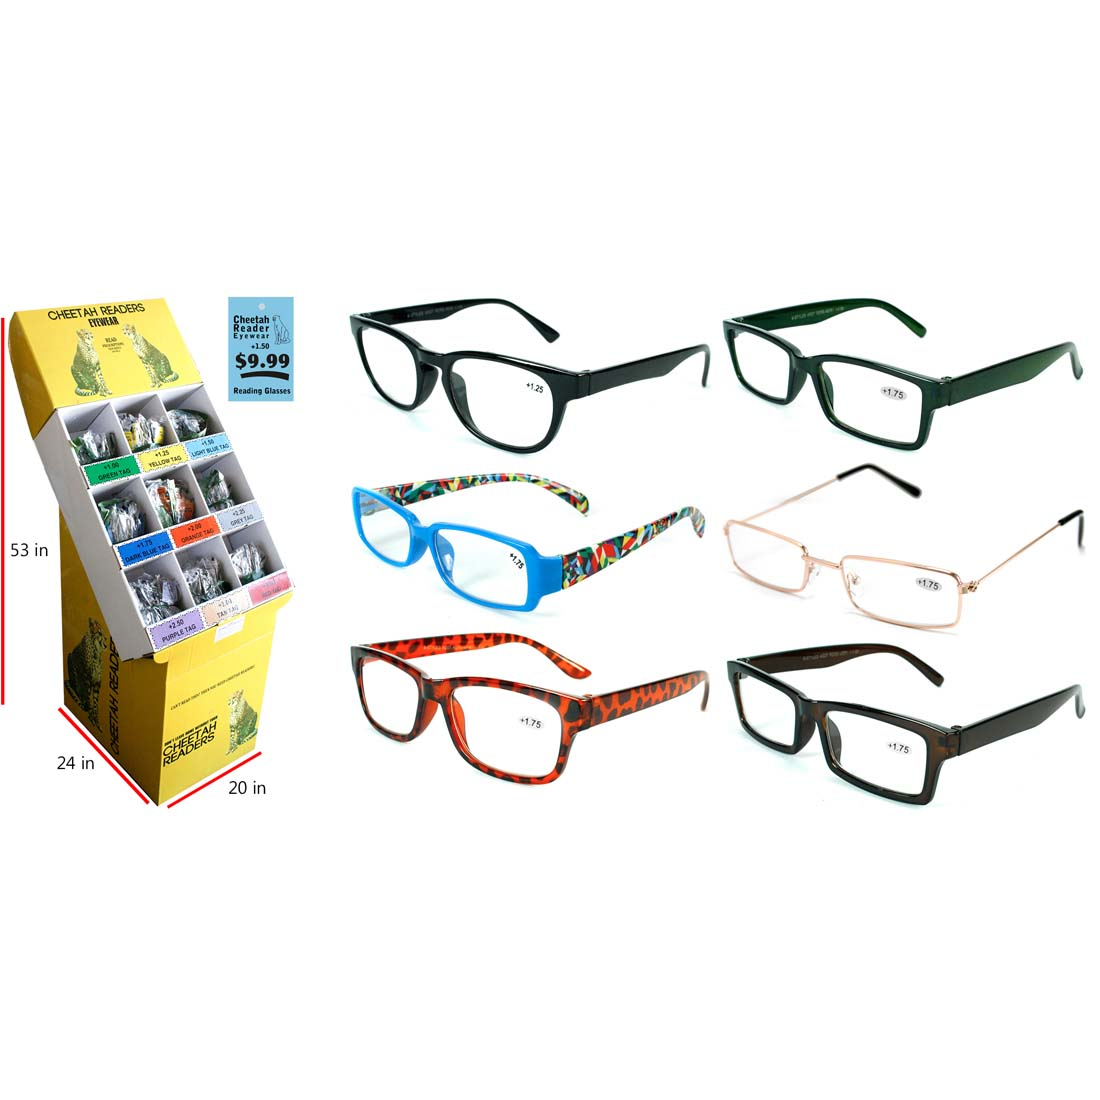 View READING GLASSES IN DISPLAY ASSORTED POWERS (+1.00-+3.50)